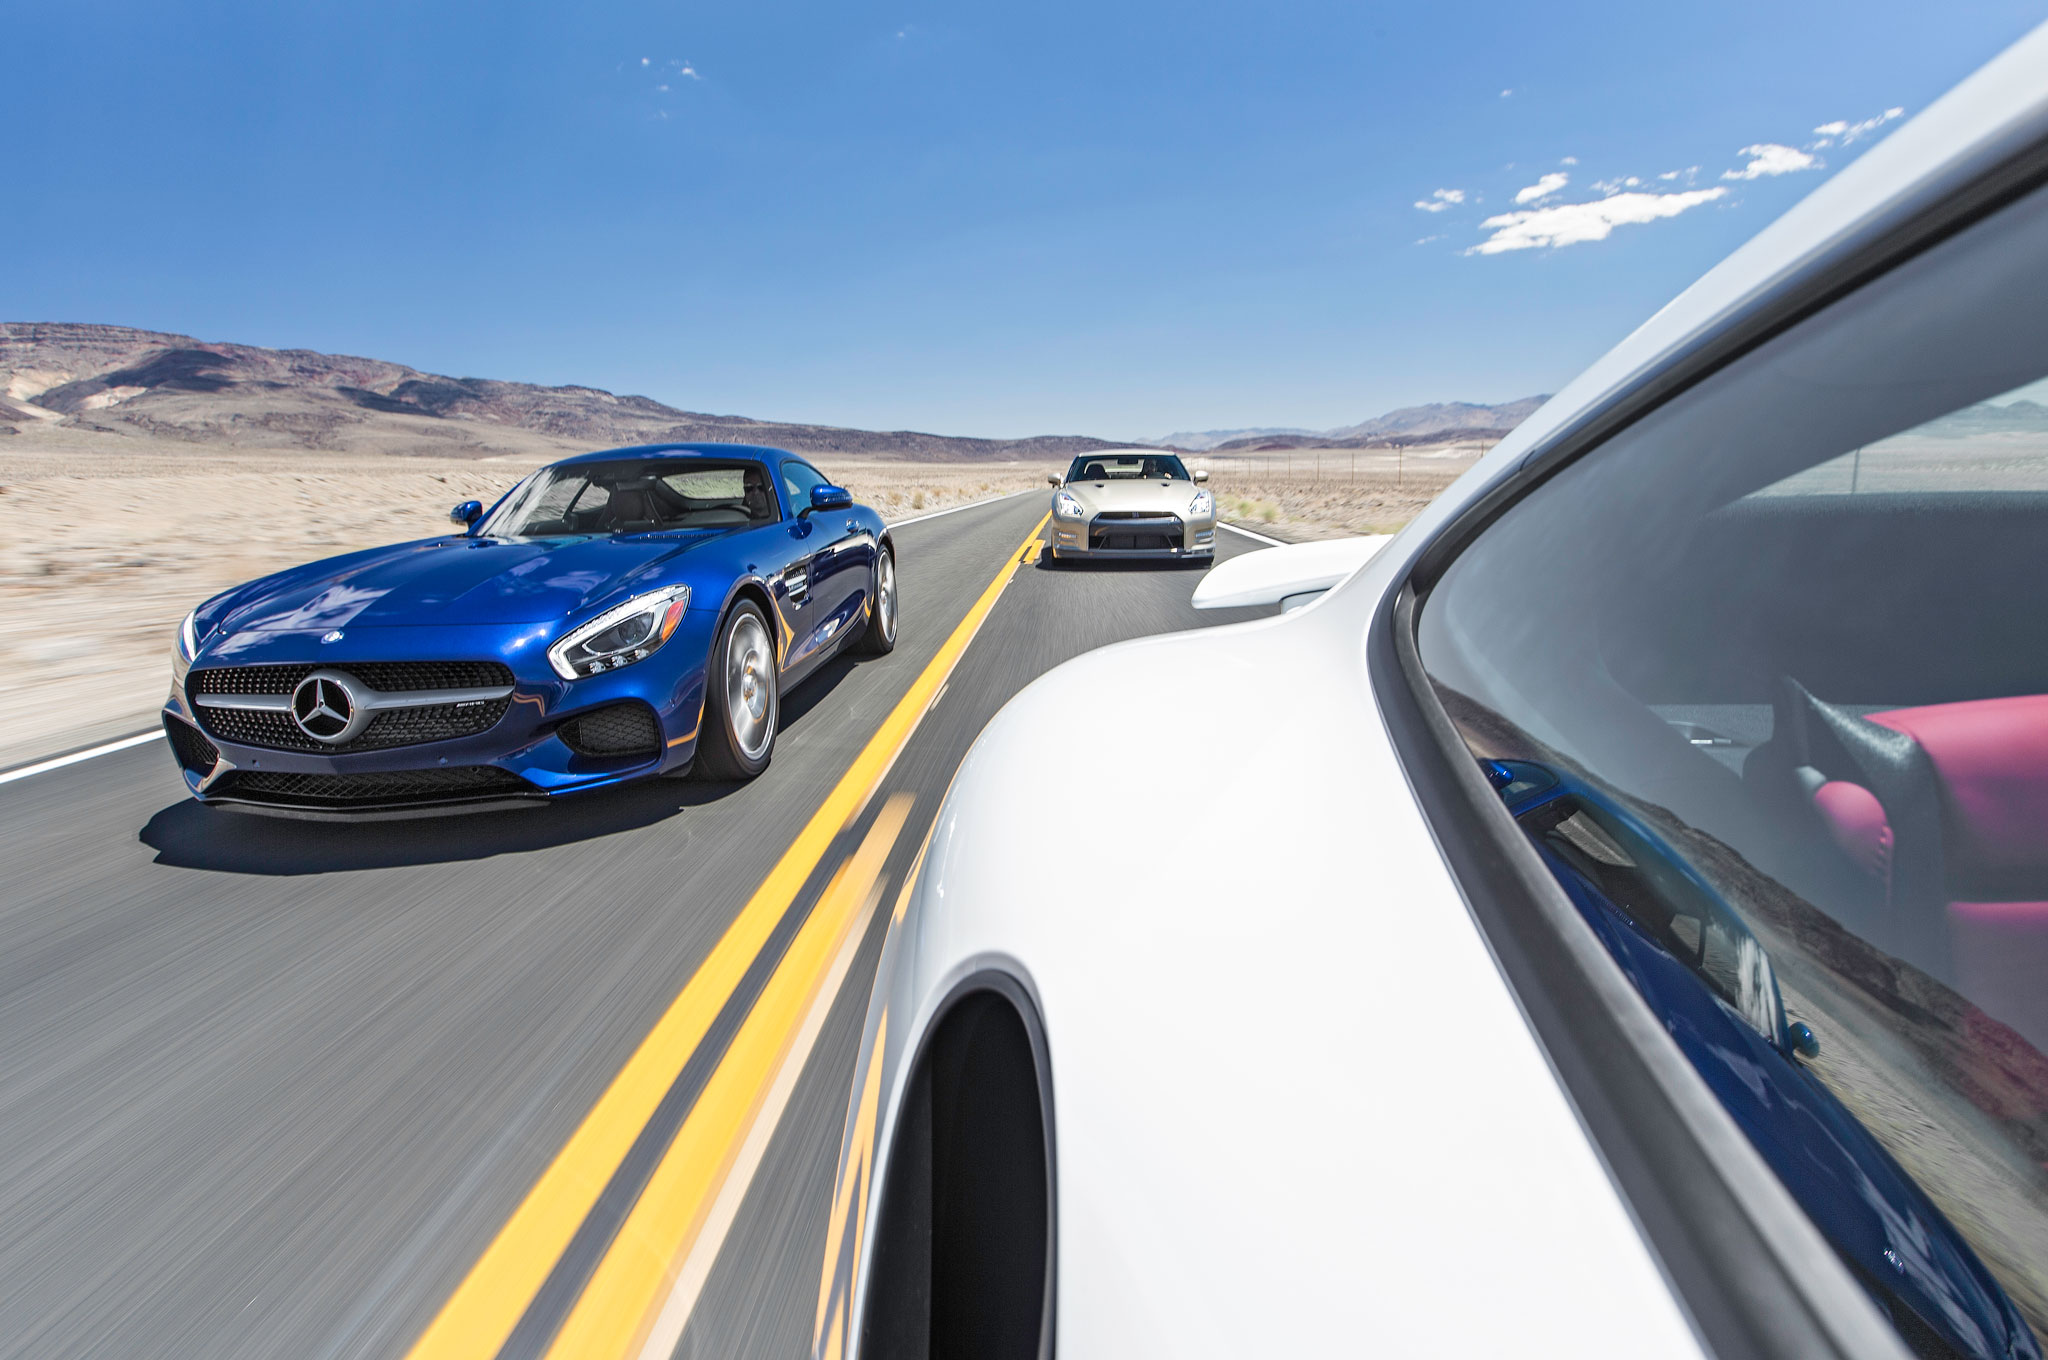 Happiness is a long, straight road where you can stretch a 500-plus horsepower car's legs, followed by a nice twisty one where you can whip it through the corners.